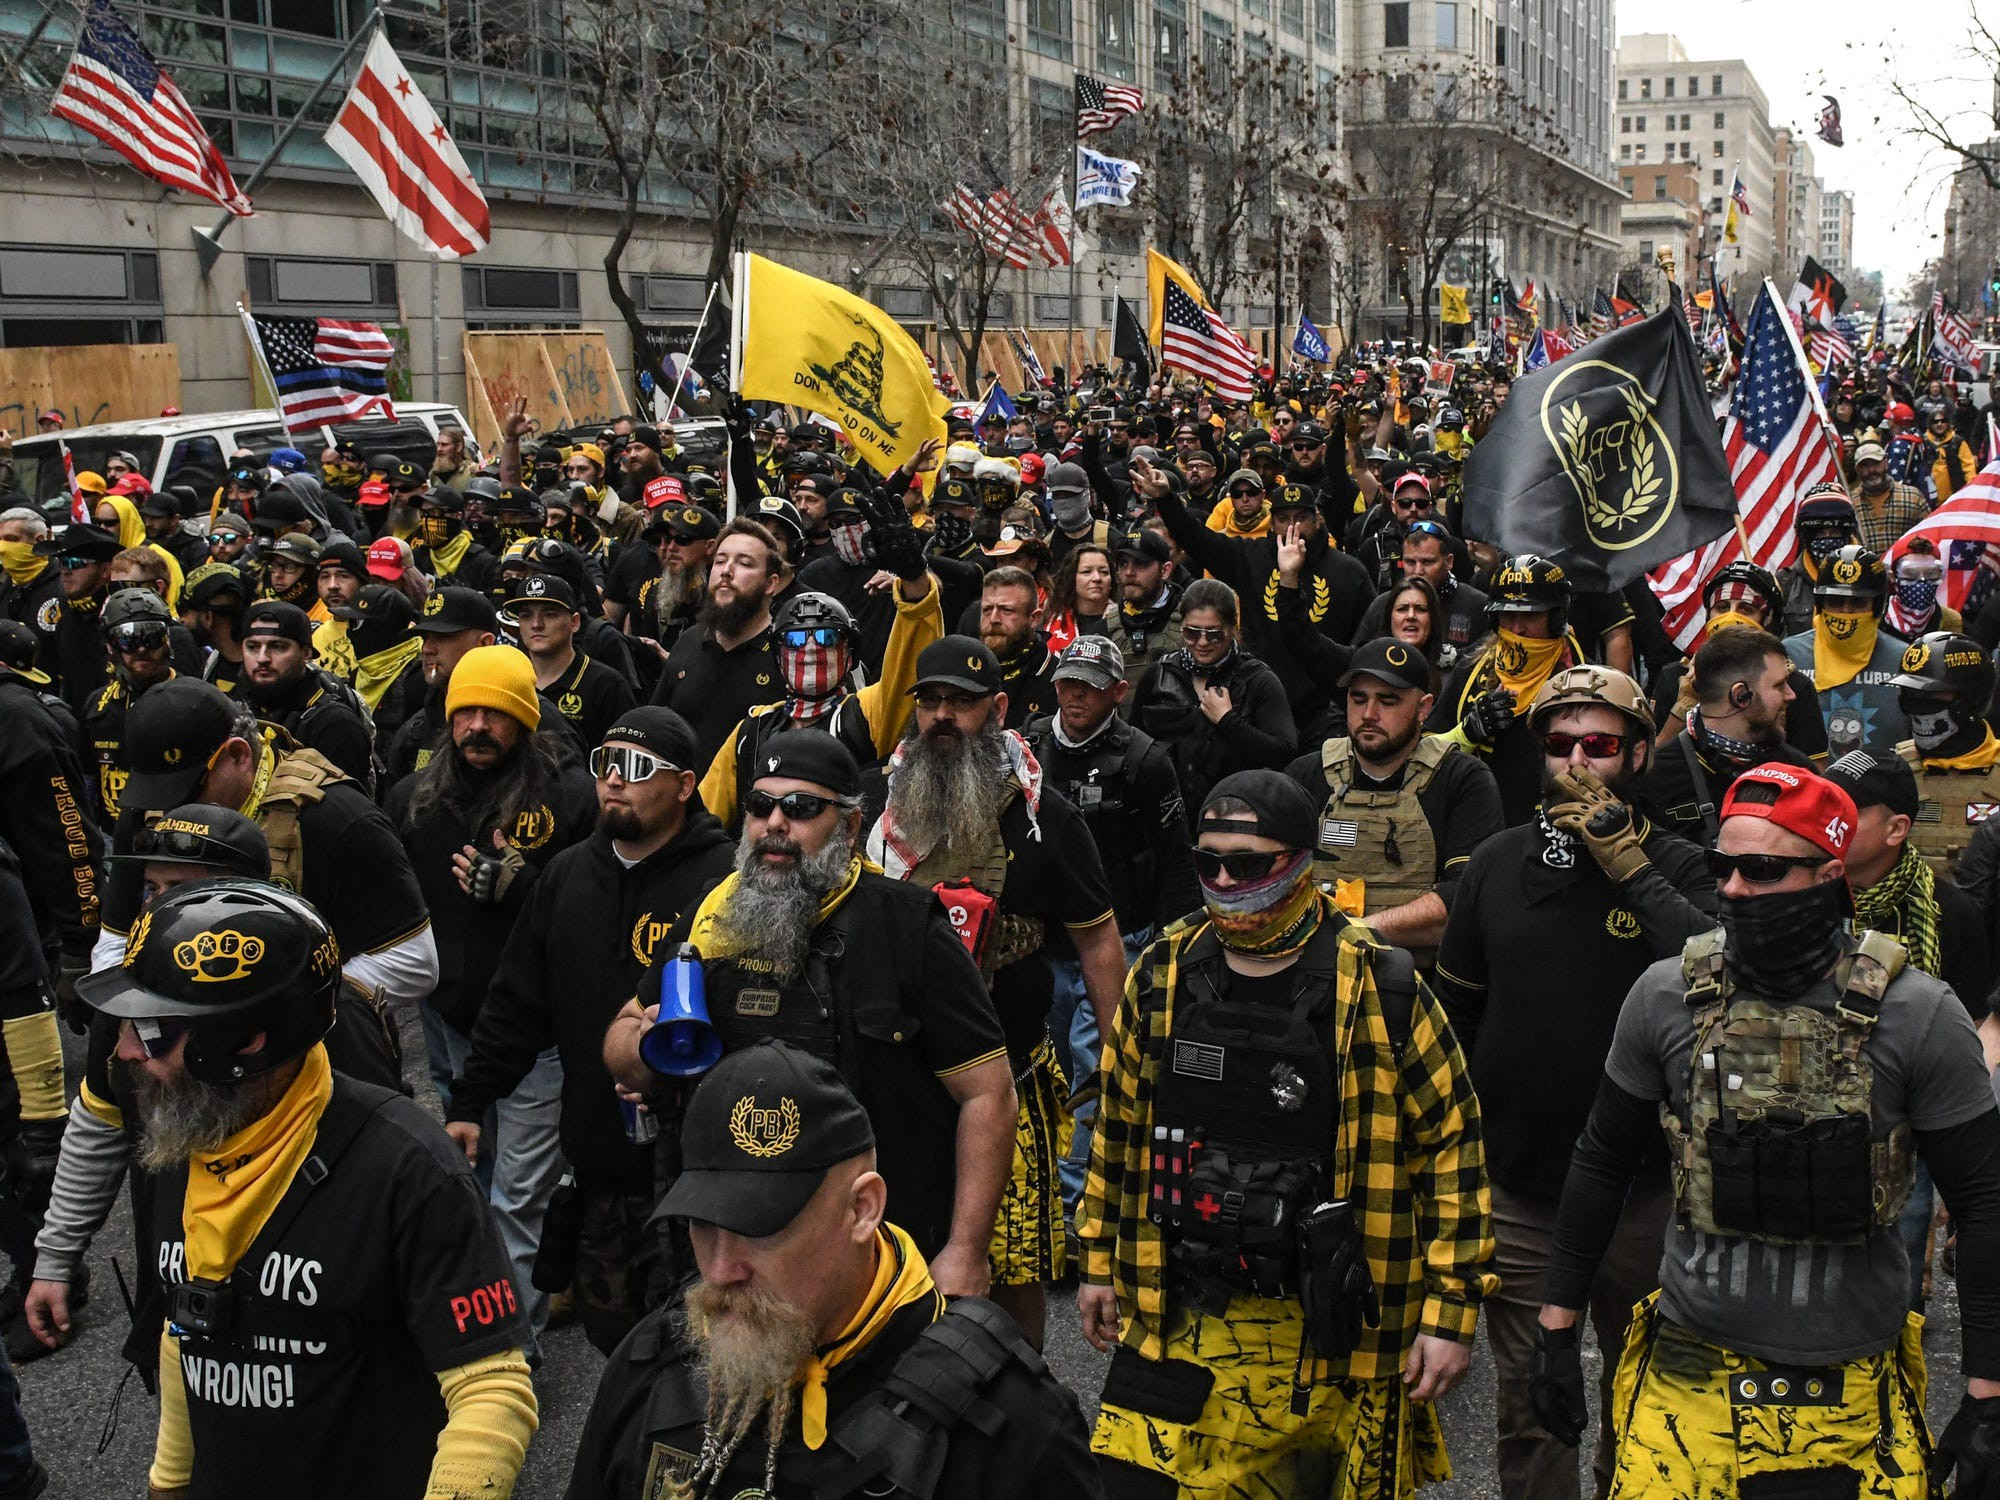 A Proud Boys demonstration.